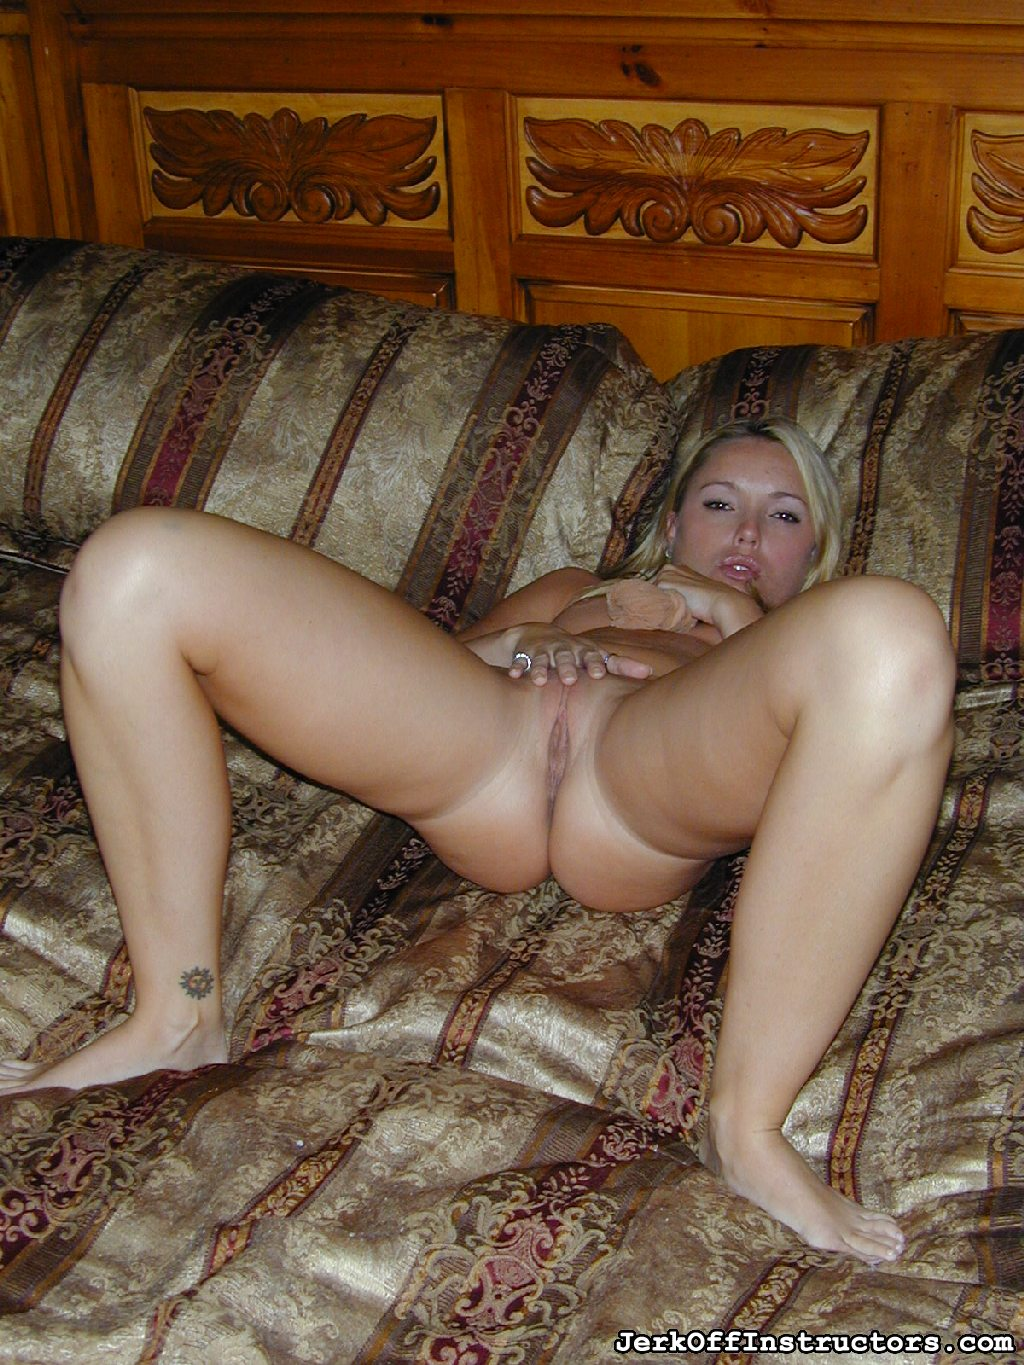 vicky sex video free gall